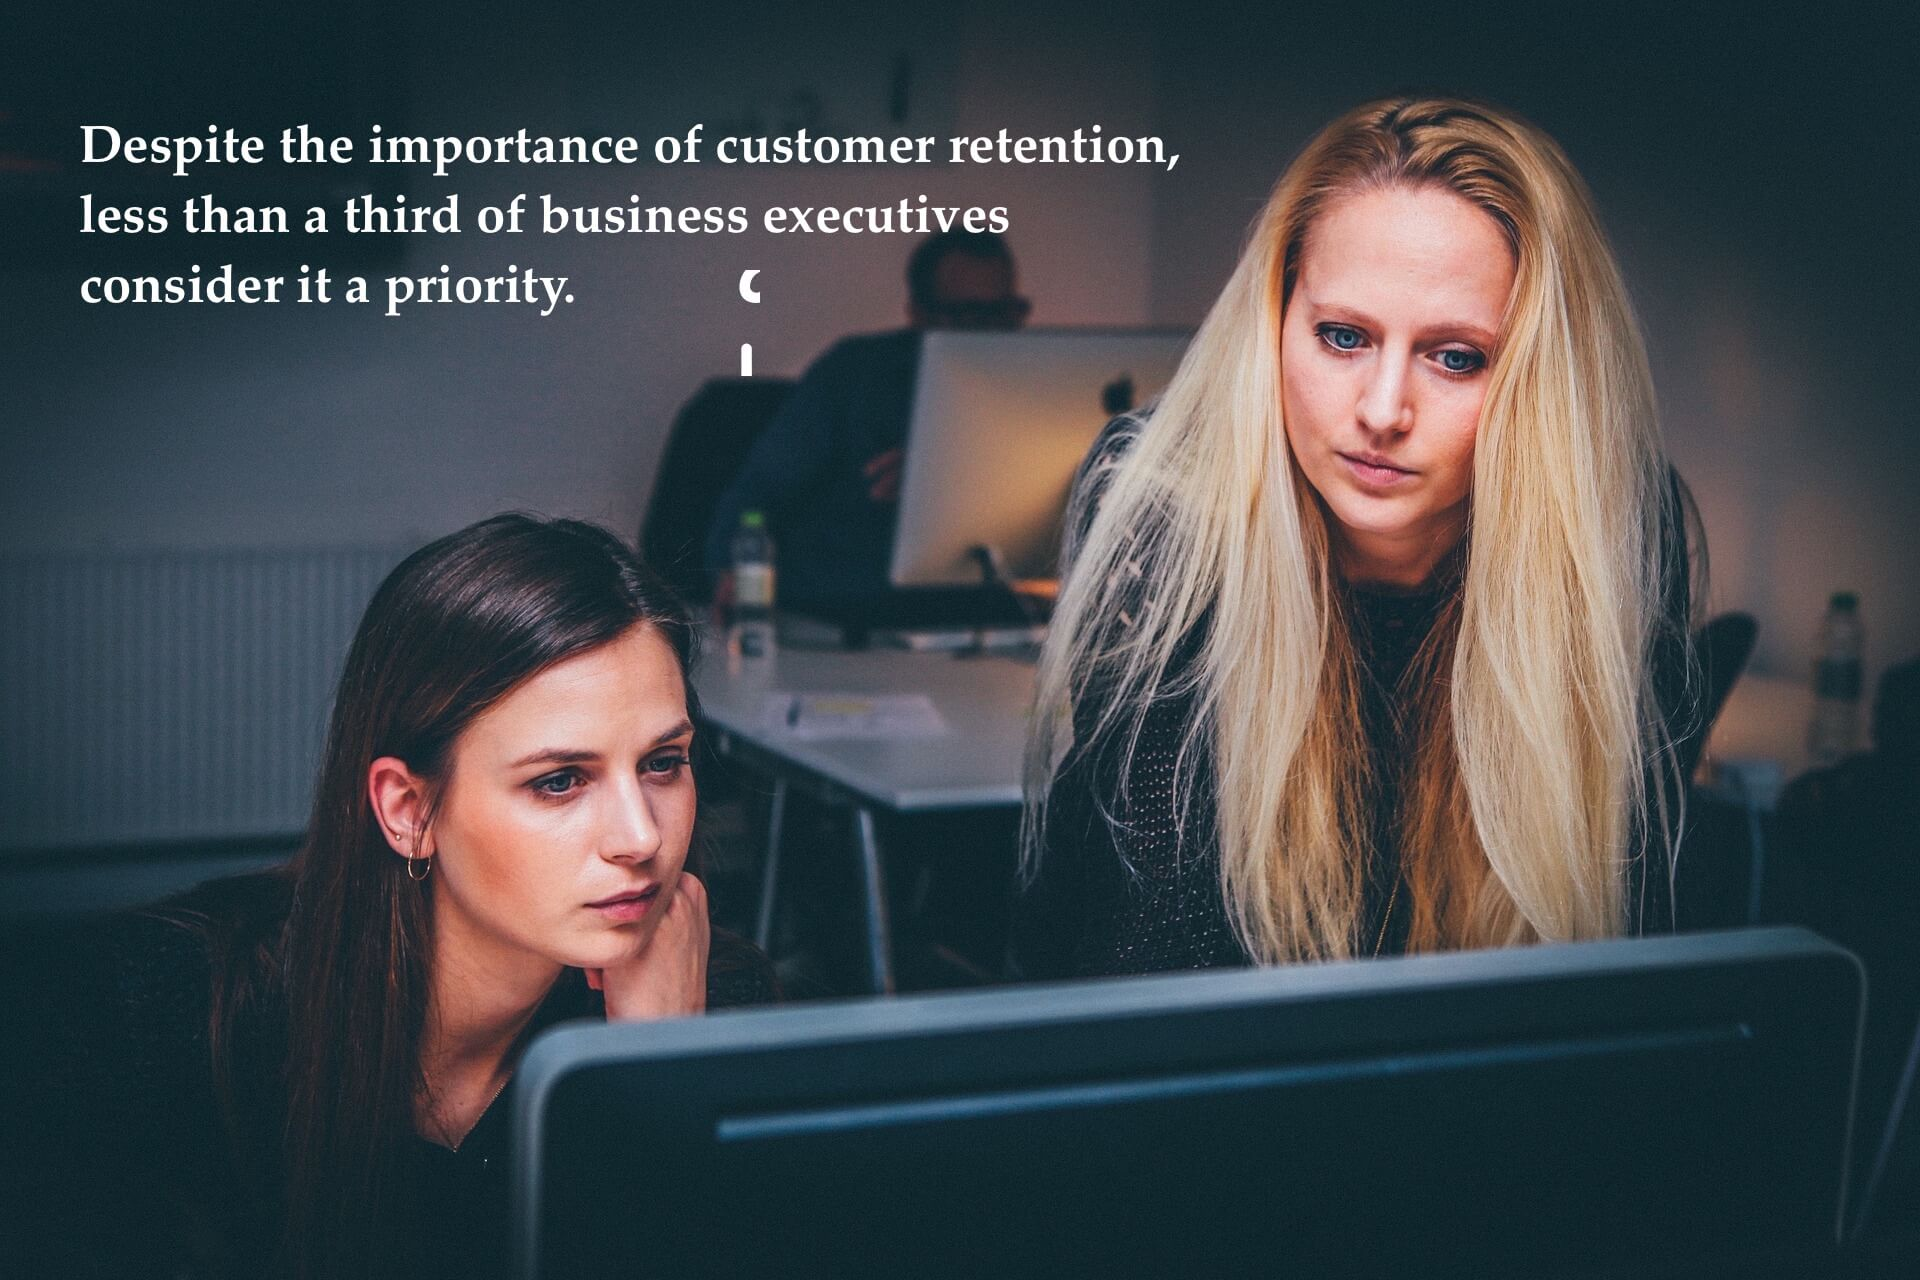 Despite the importance of customer retention, less than a third of business executives consider it a priority.